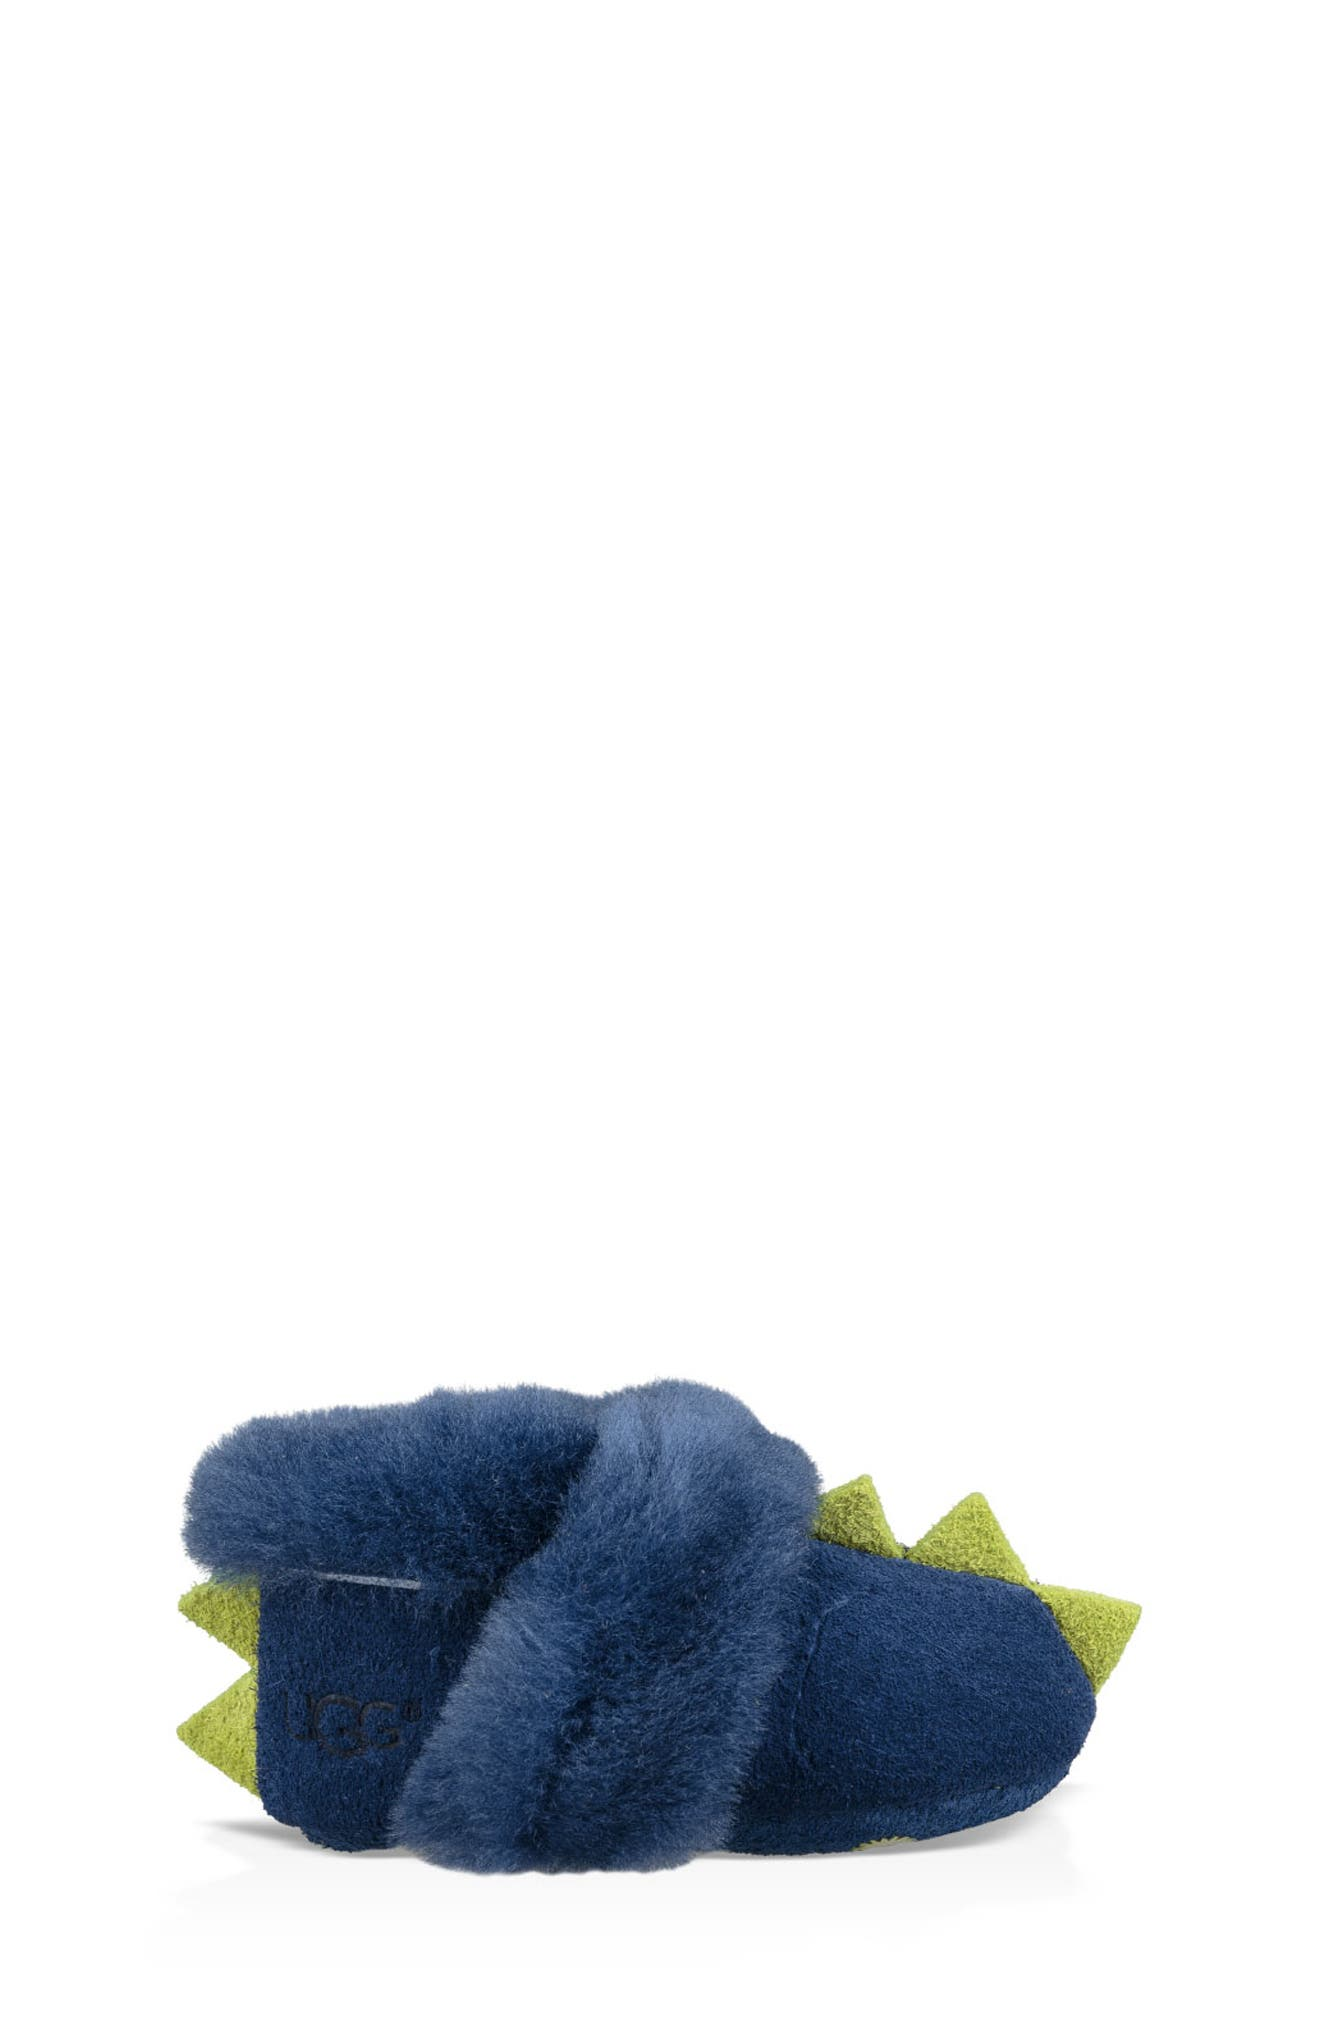 Dydo Solvi Genuine Shearling Cuffed Bootie,                             Alternate thumbnail 3, color,                             NAVY / BRIGHT CHARTREUSE